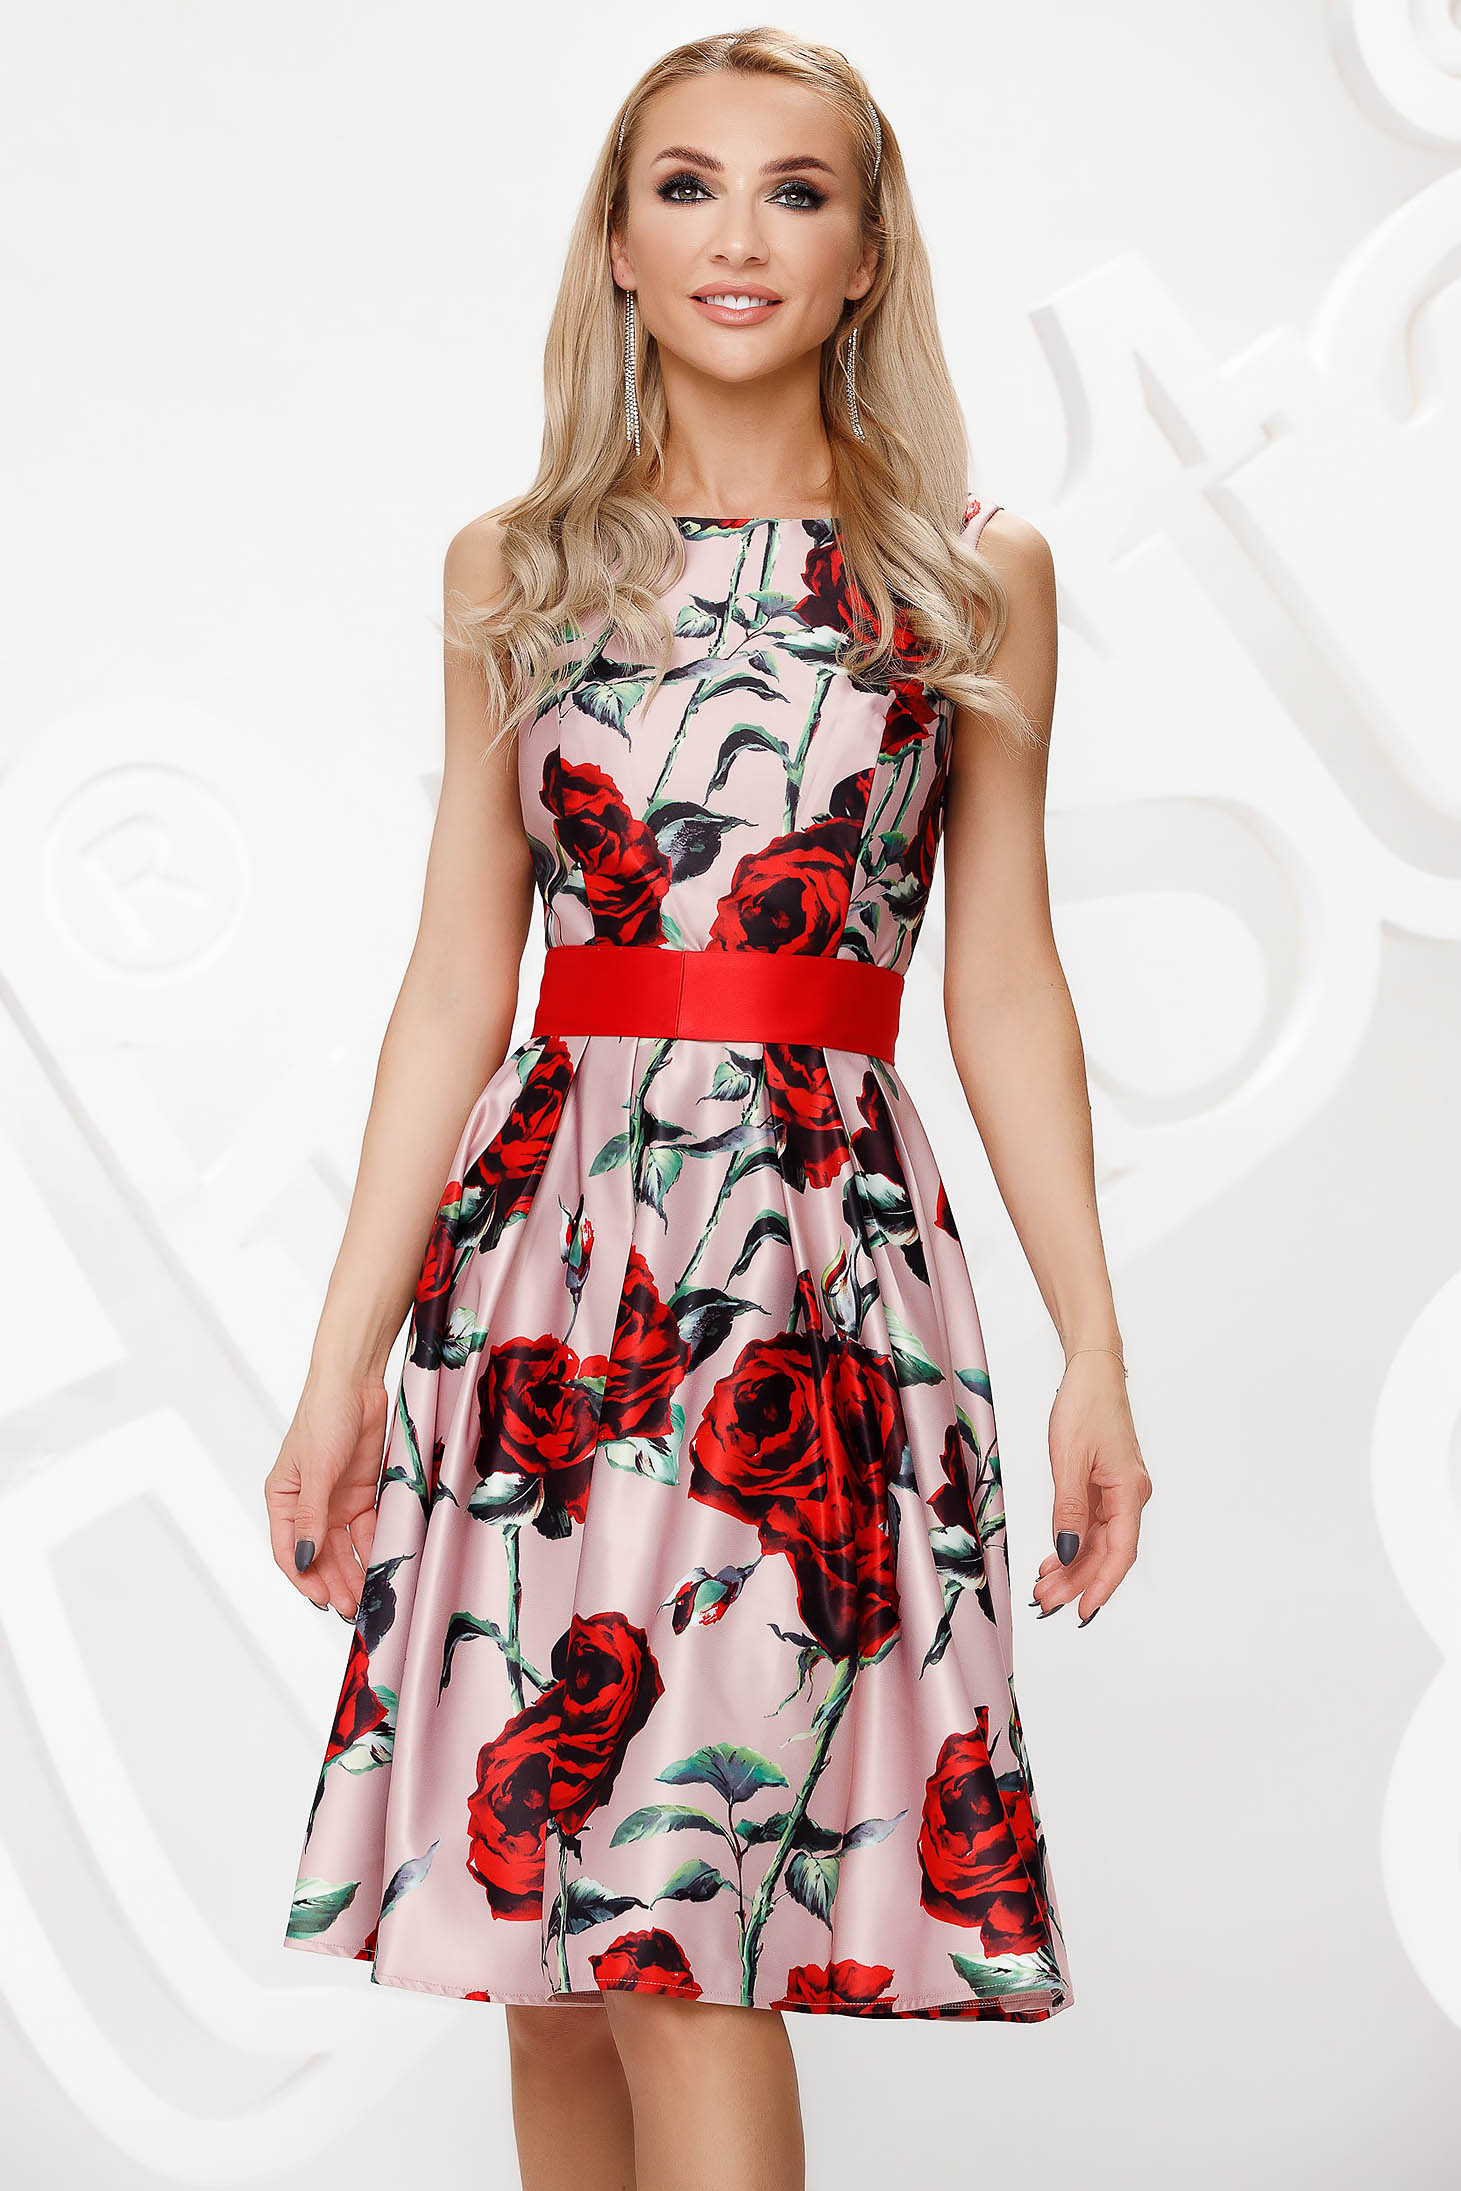 Dress from satin occasional cloche with floral print midi